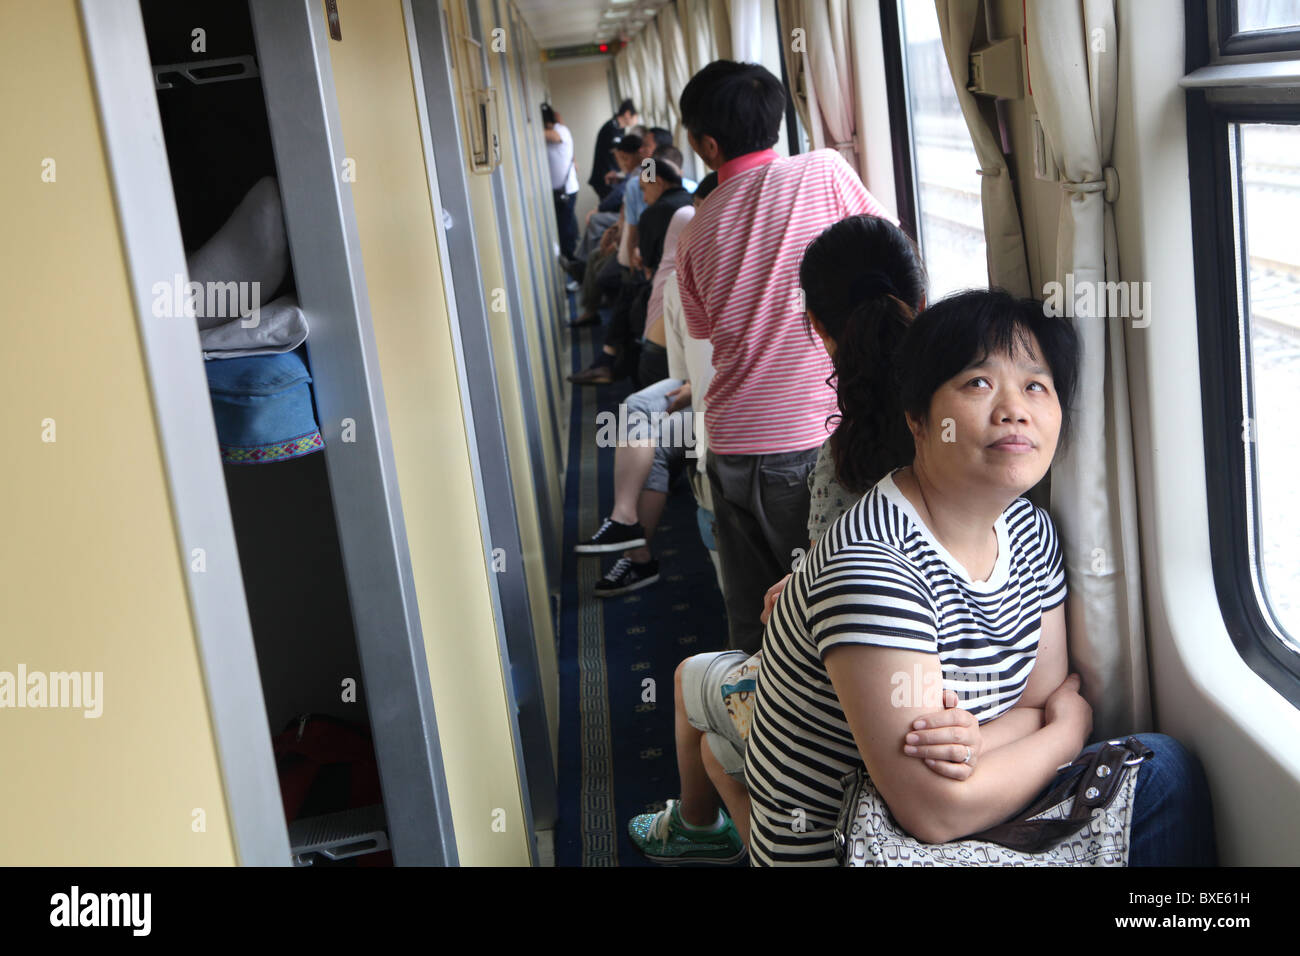 Passengers on the Qinghai - Xizang train, the world's highest railway, here between Chengdu and Lhasa, Tibet. - Stock Image